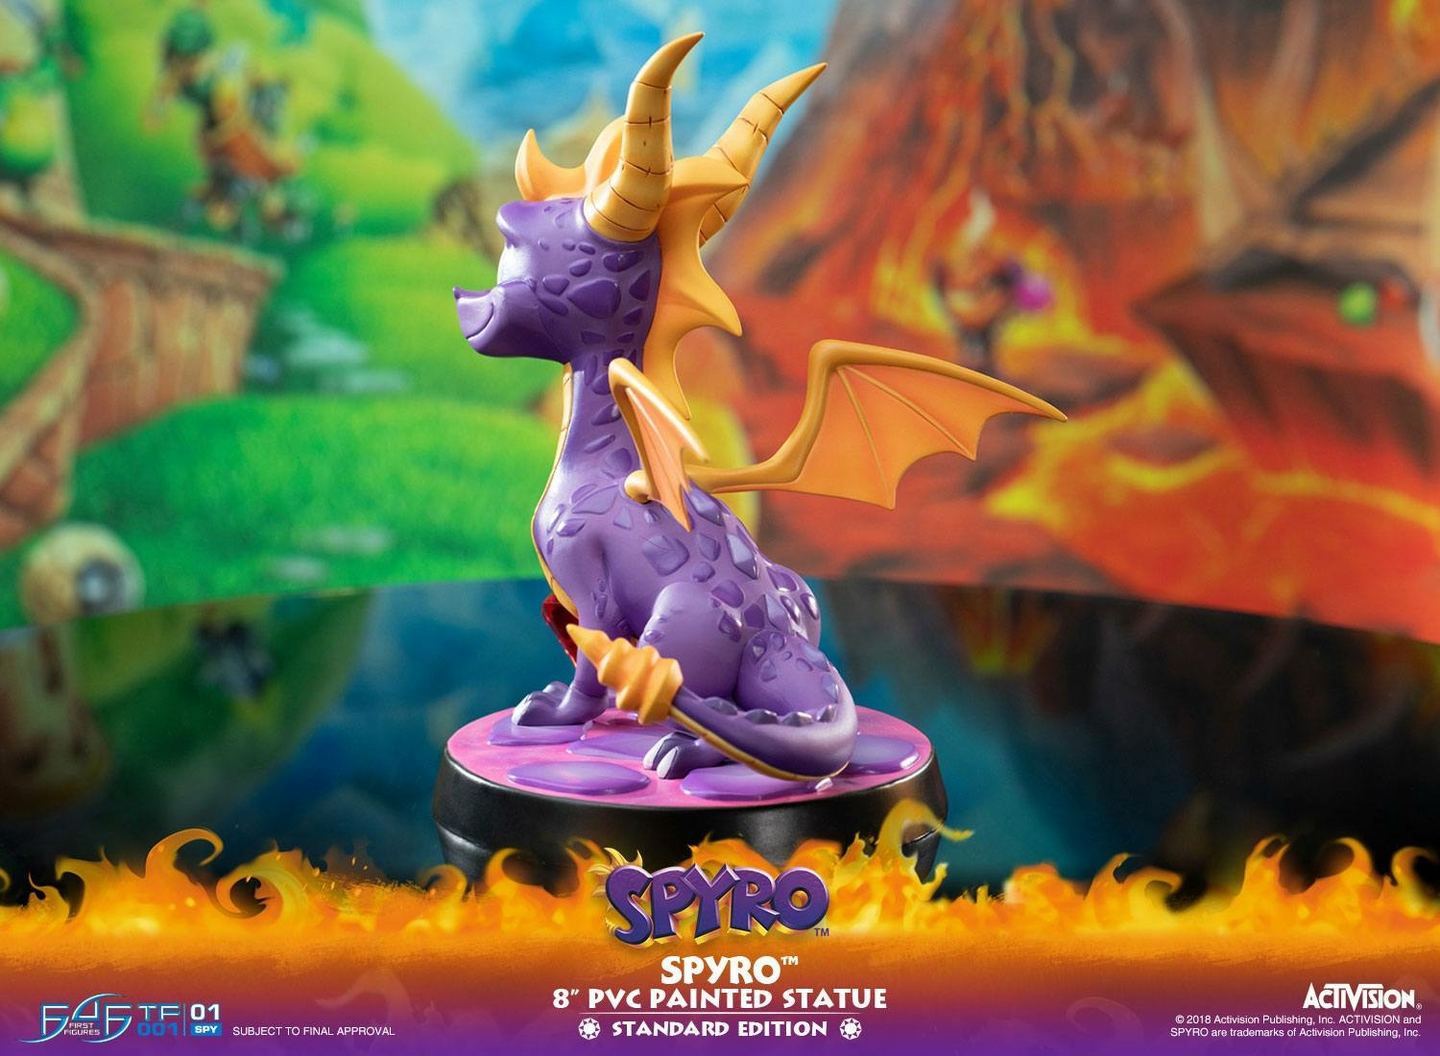 Statuette Spyro the Dragon Spyro 20cm 1001 Figurines (13)